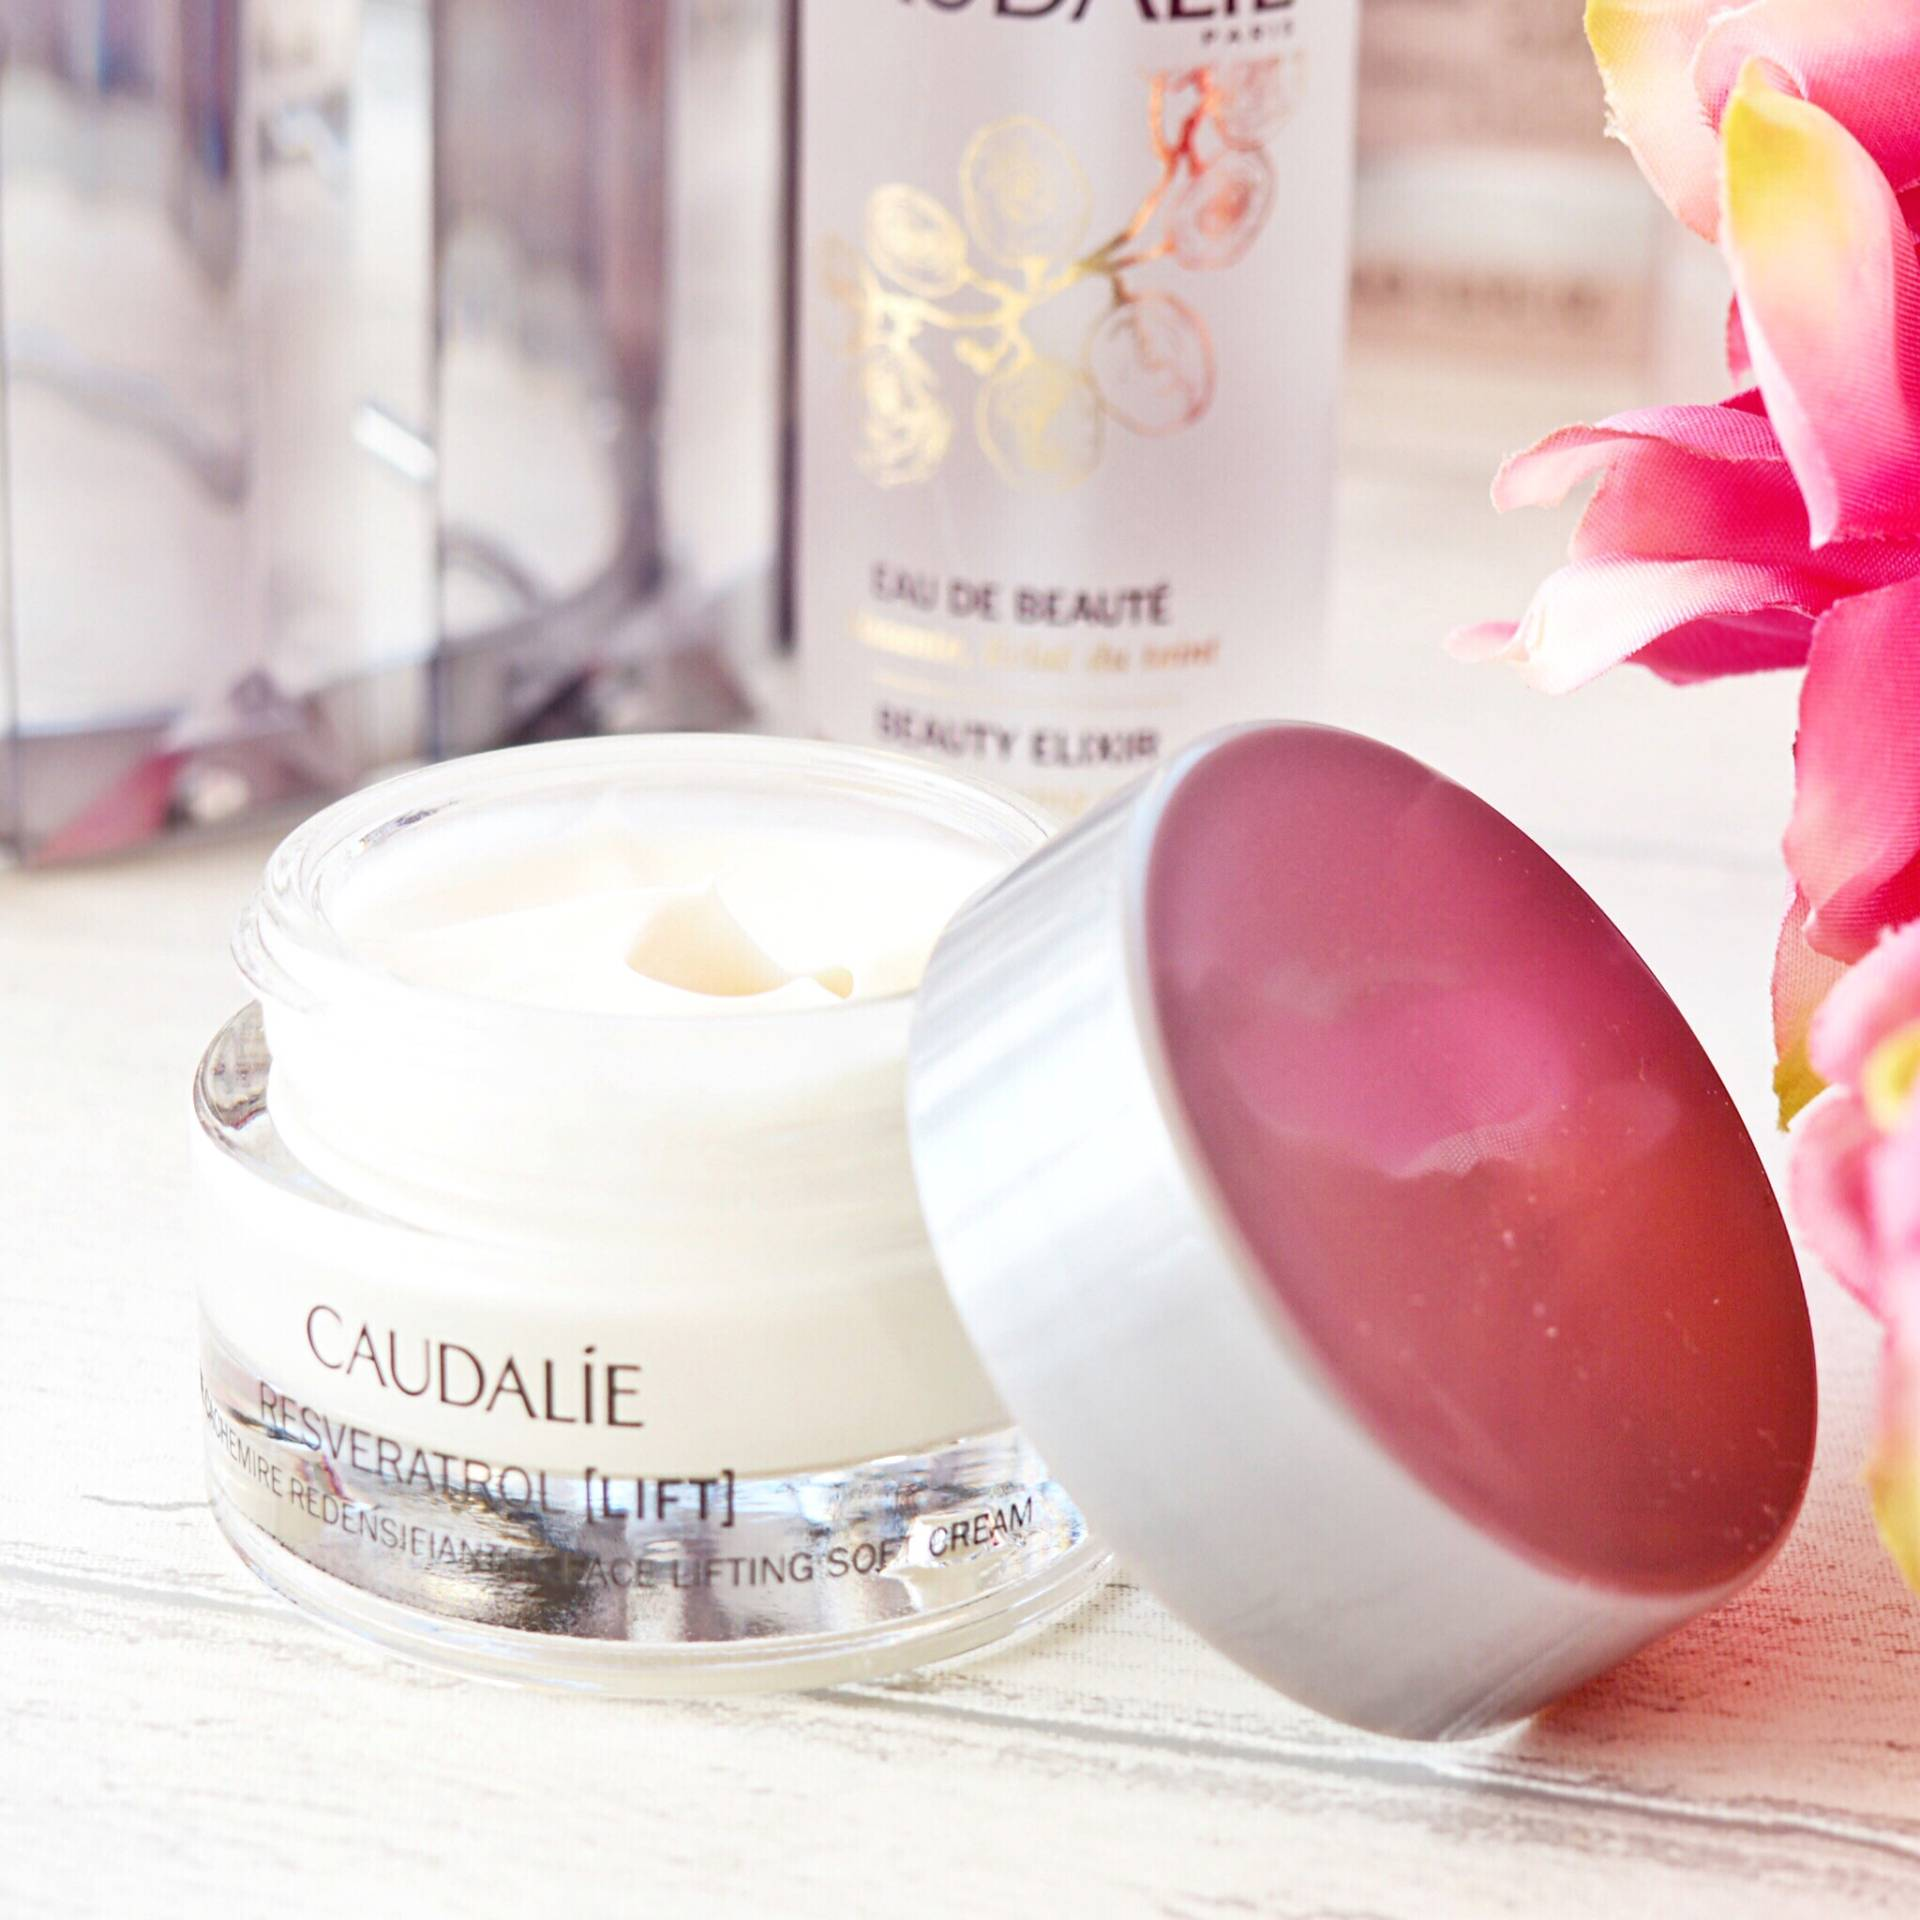 Caudalie Resveratrol Lift Face Cream